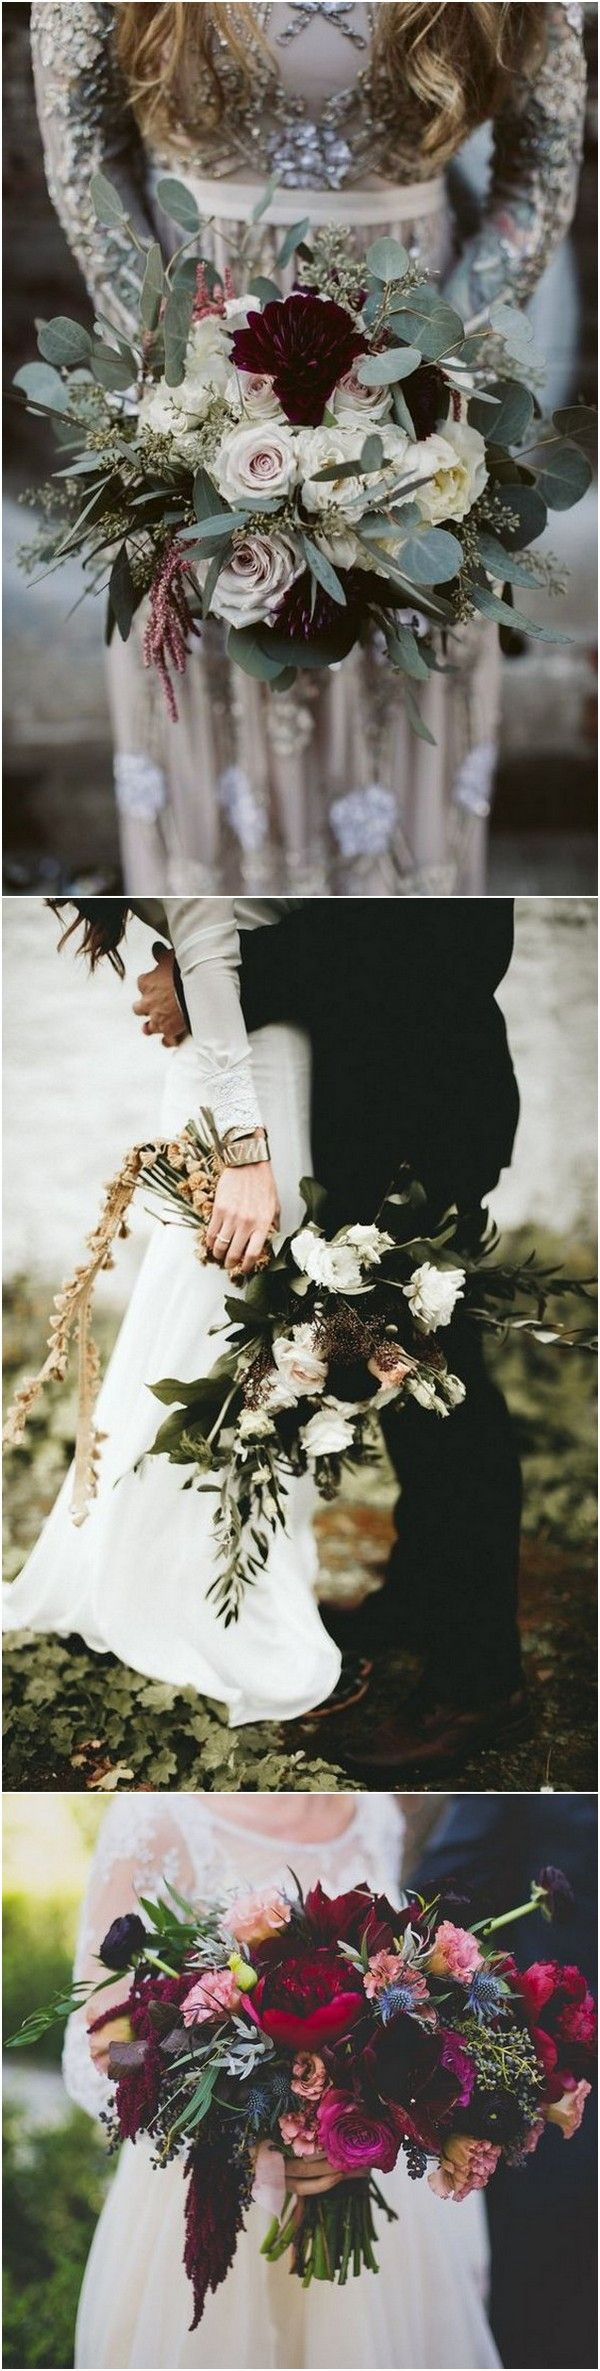 trending moody wedding bouquets for 2018 trends #weddingflowers #weddingbouquets #weddingideas #weddingfloral